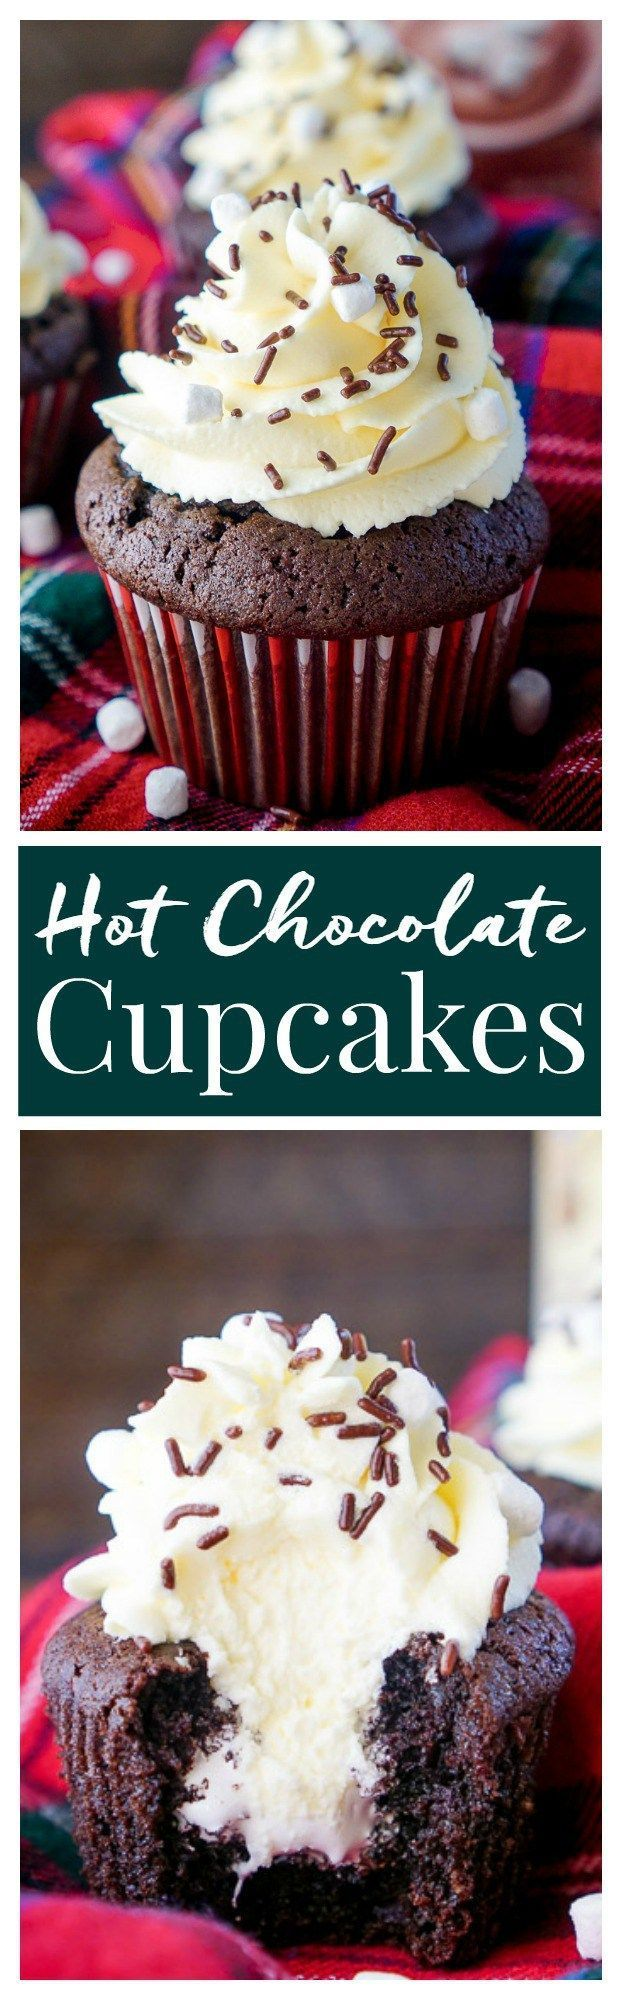 Best 25+ Hot chocolate cupcakes ideas on Pinterest | Cooking ...